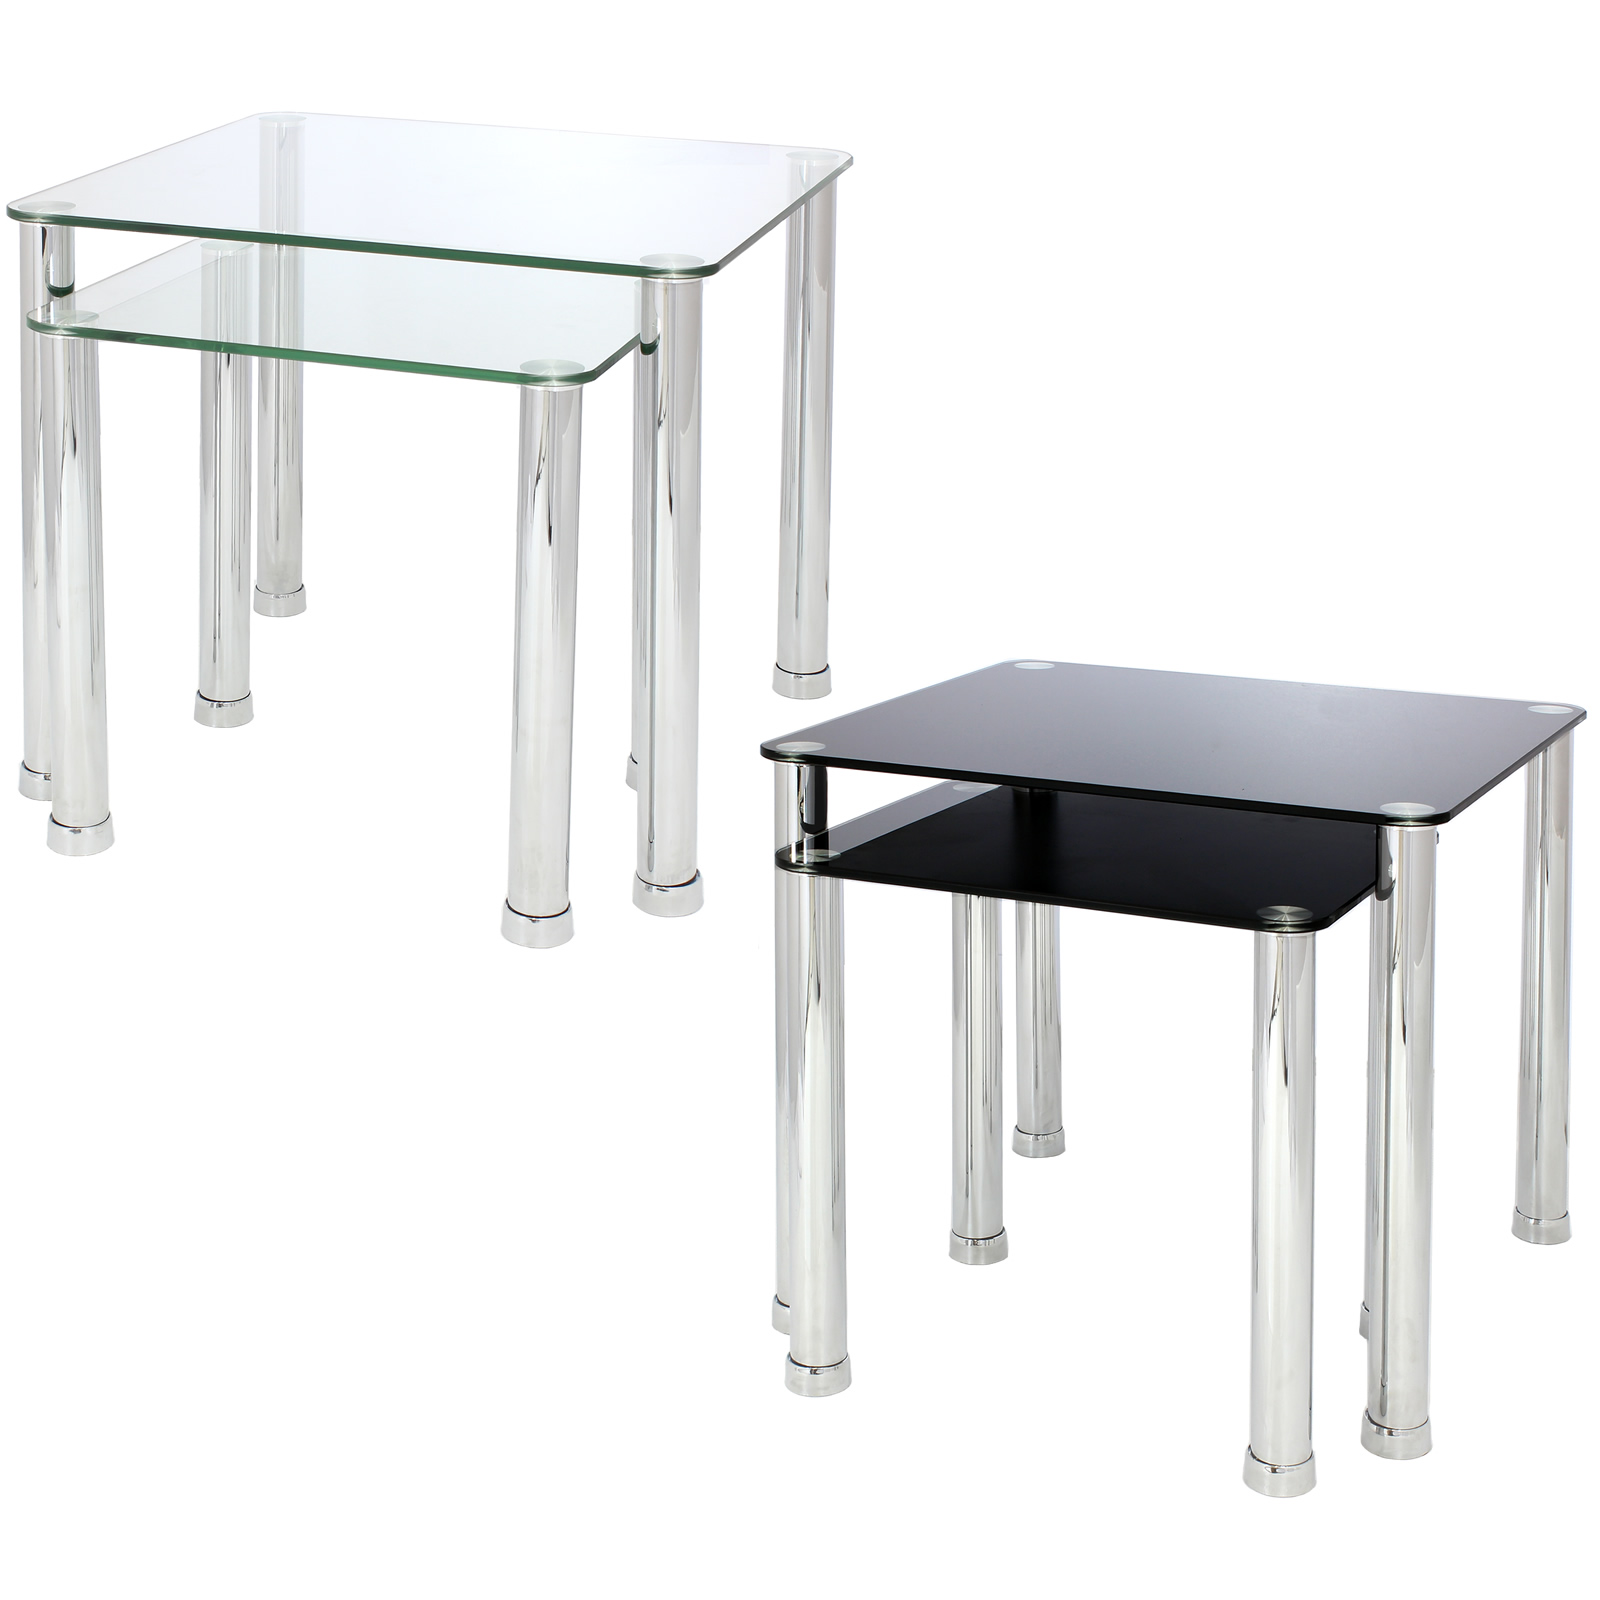 Glass Nest Coffee Tables Nest Of 2 Glass Chrome Tables Home Lounge Living Room Set